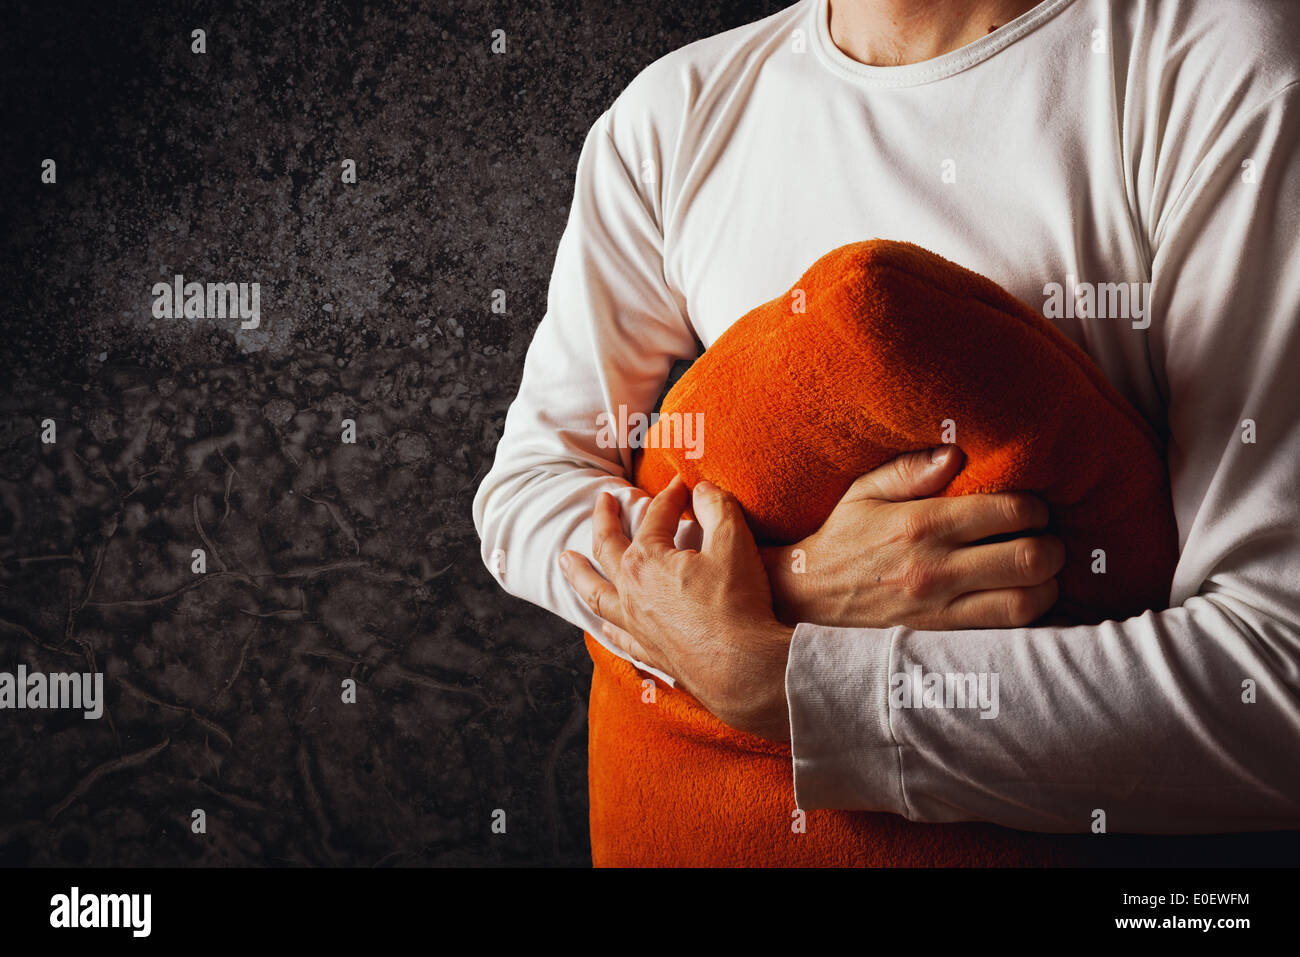 Man hugging orange pillow in dark room. Concept of grief, sadness and depression. - Stock Image